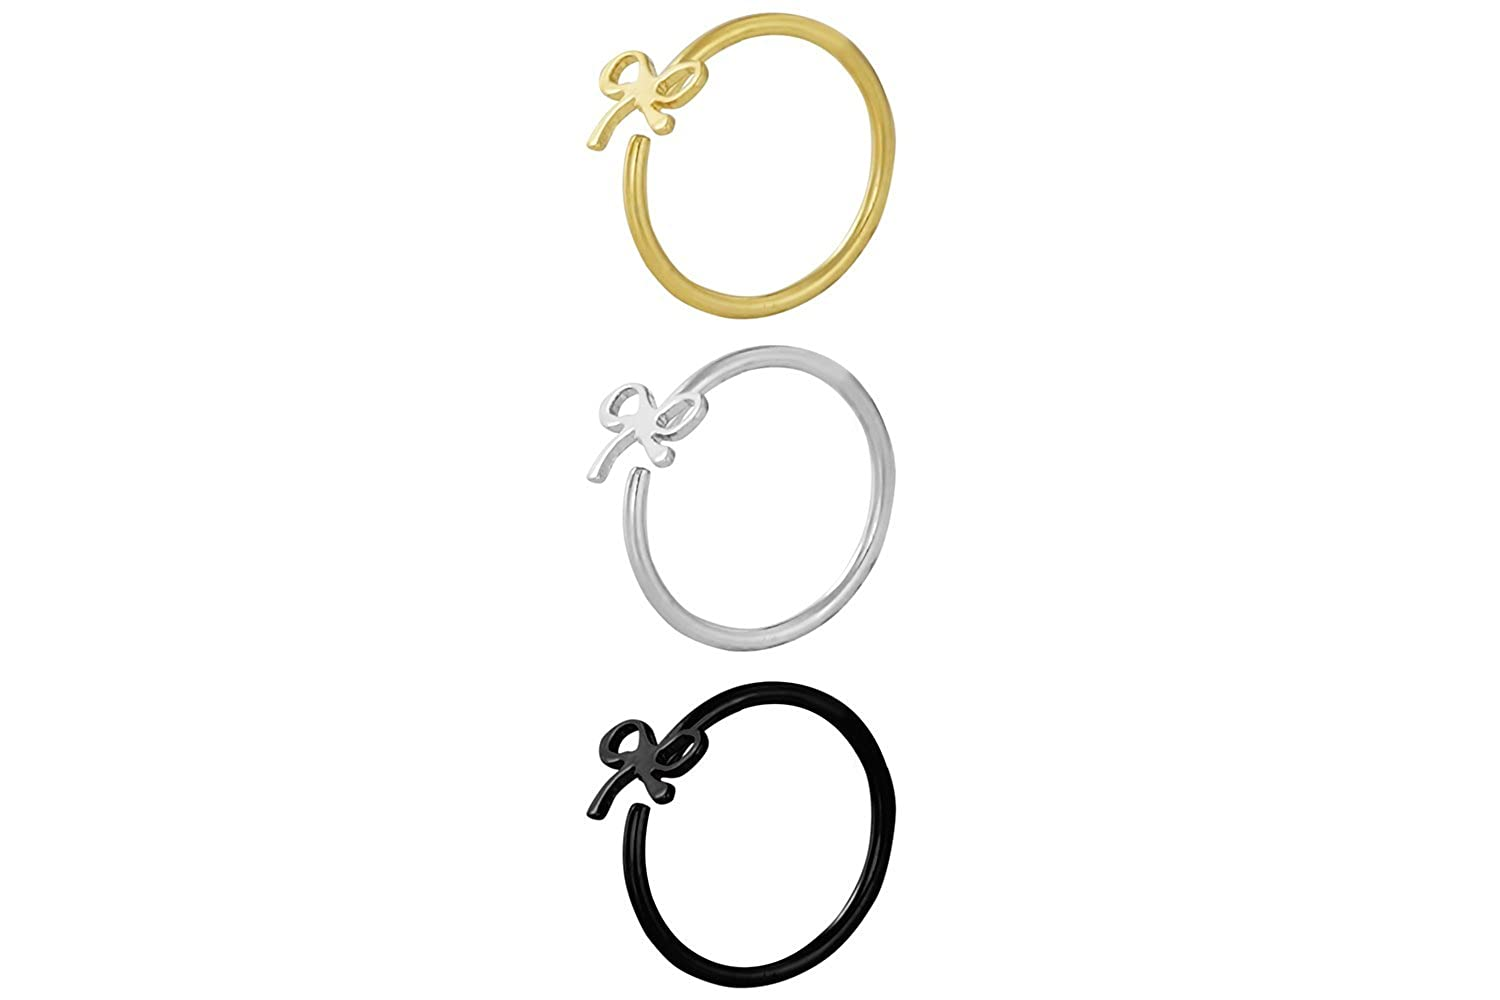 20g 8mm IP Plated Surgical Steel Bow Design Rings Forbidden Body Jewelry Set of 3 Nose Hoops or Cartilage Rings